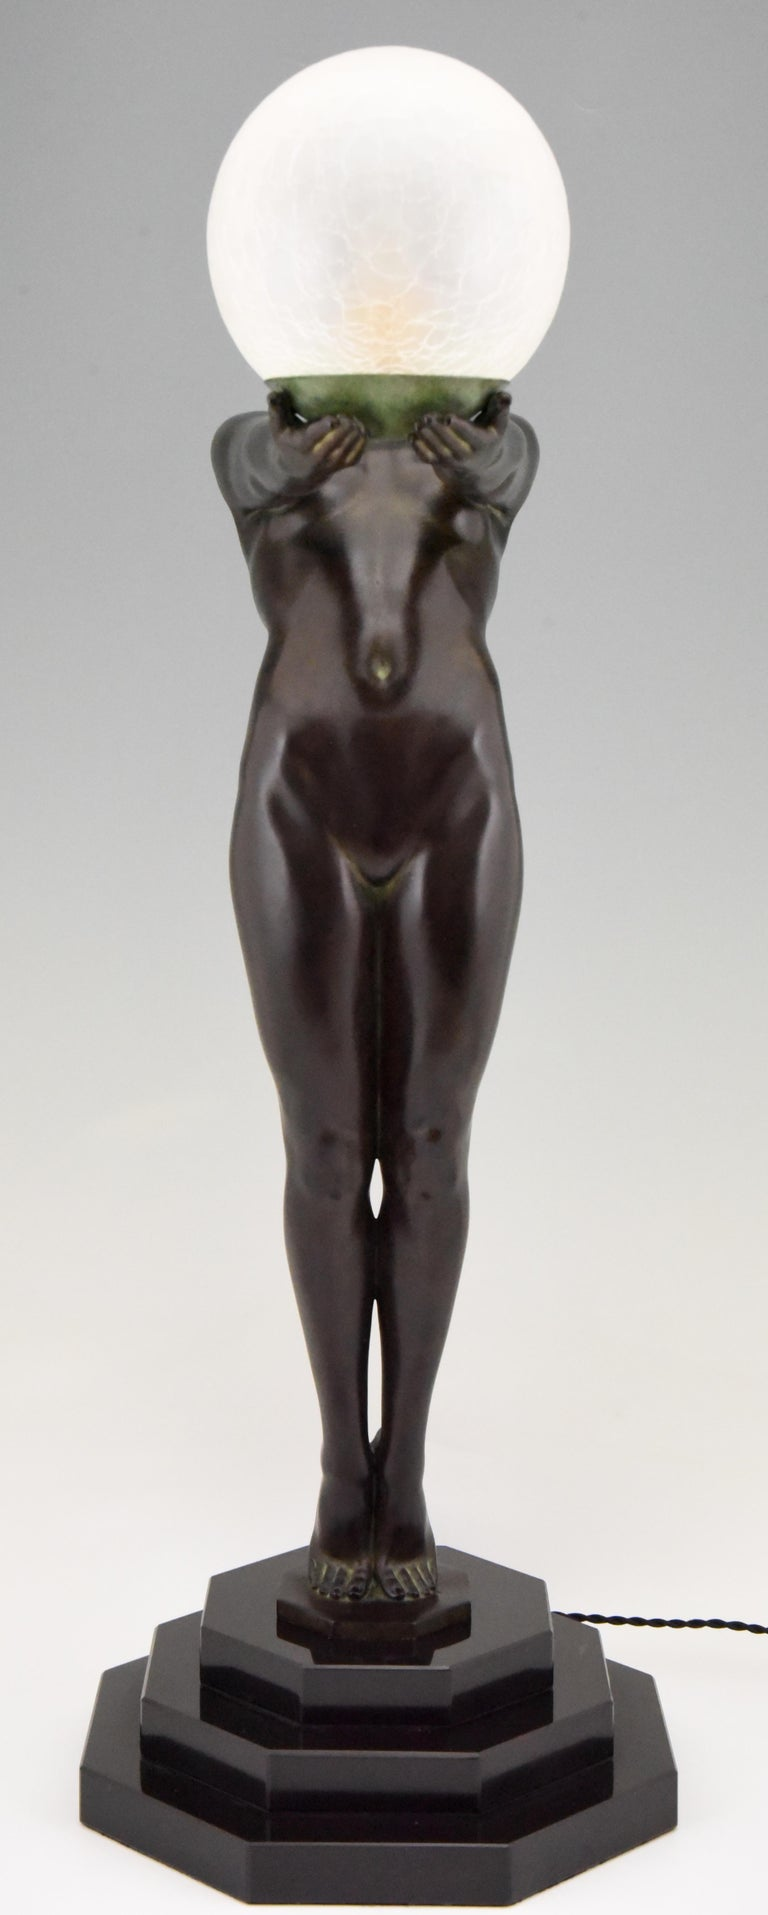 Art Deco Lamp Clarté Nude with Globe by Max Le Verrier In New Condition For Sale In Antwerp, BE